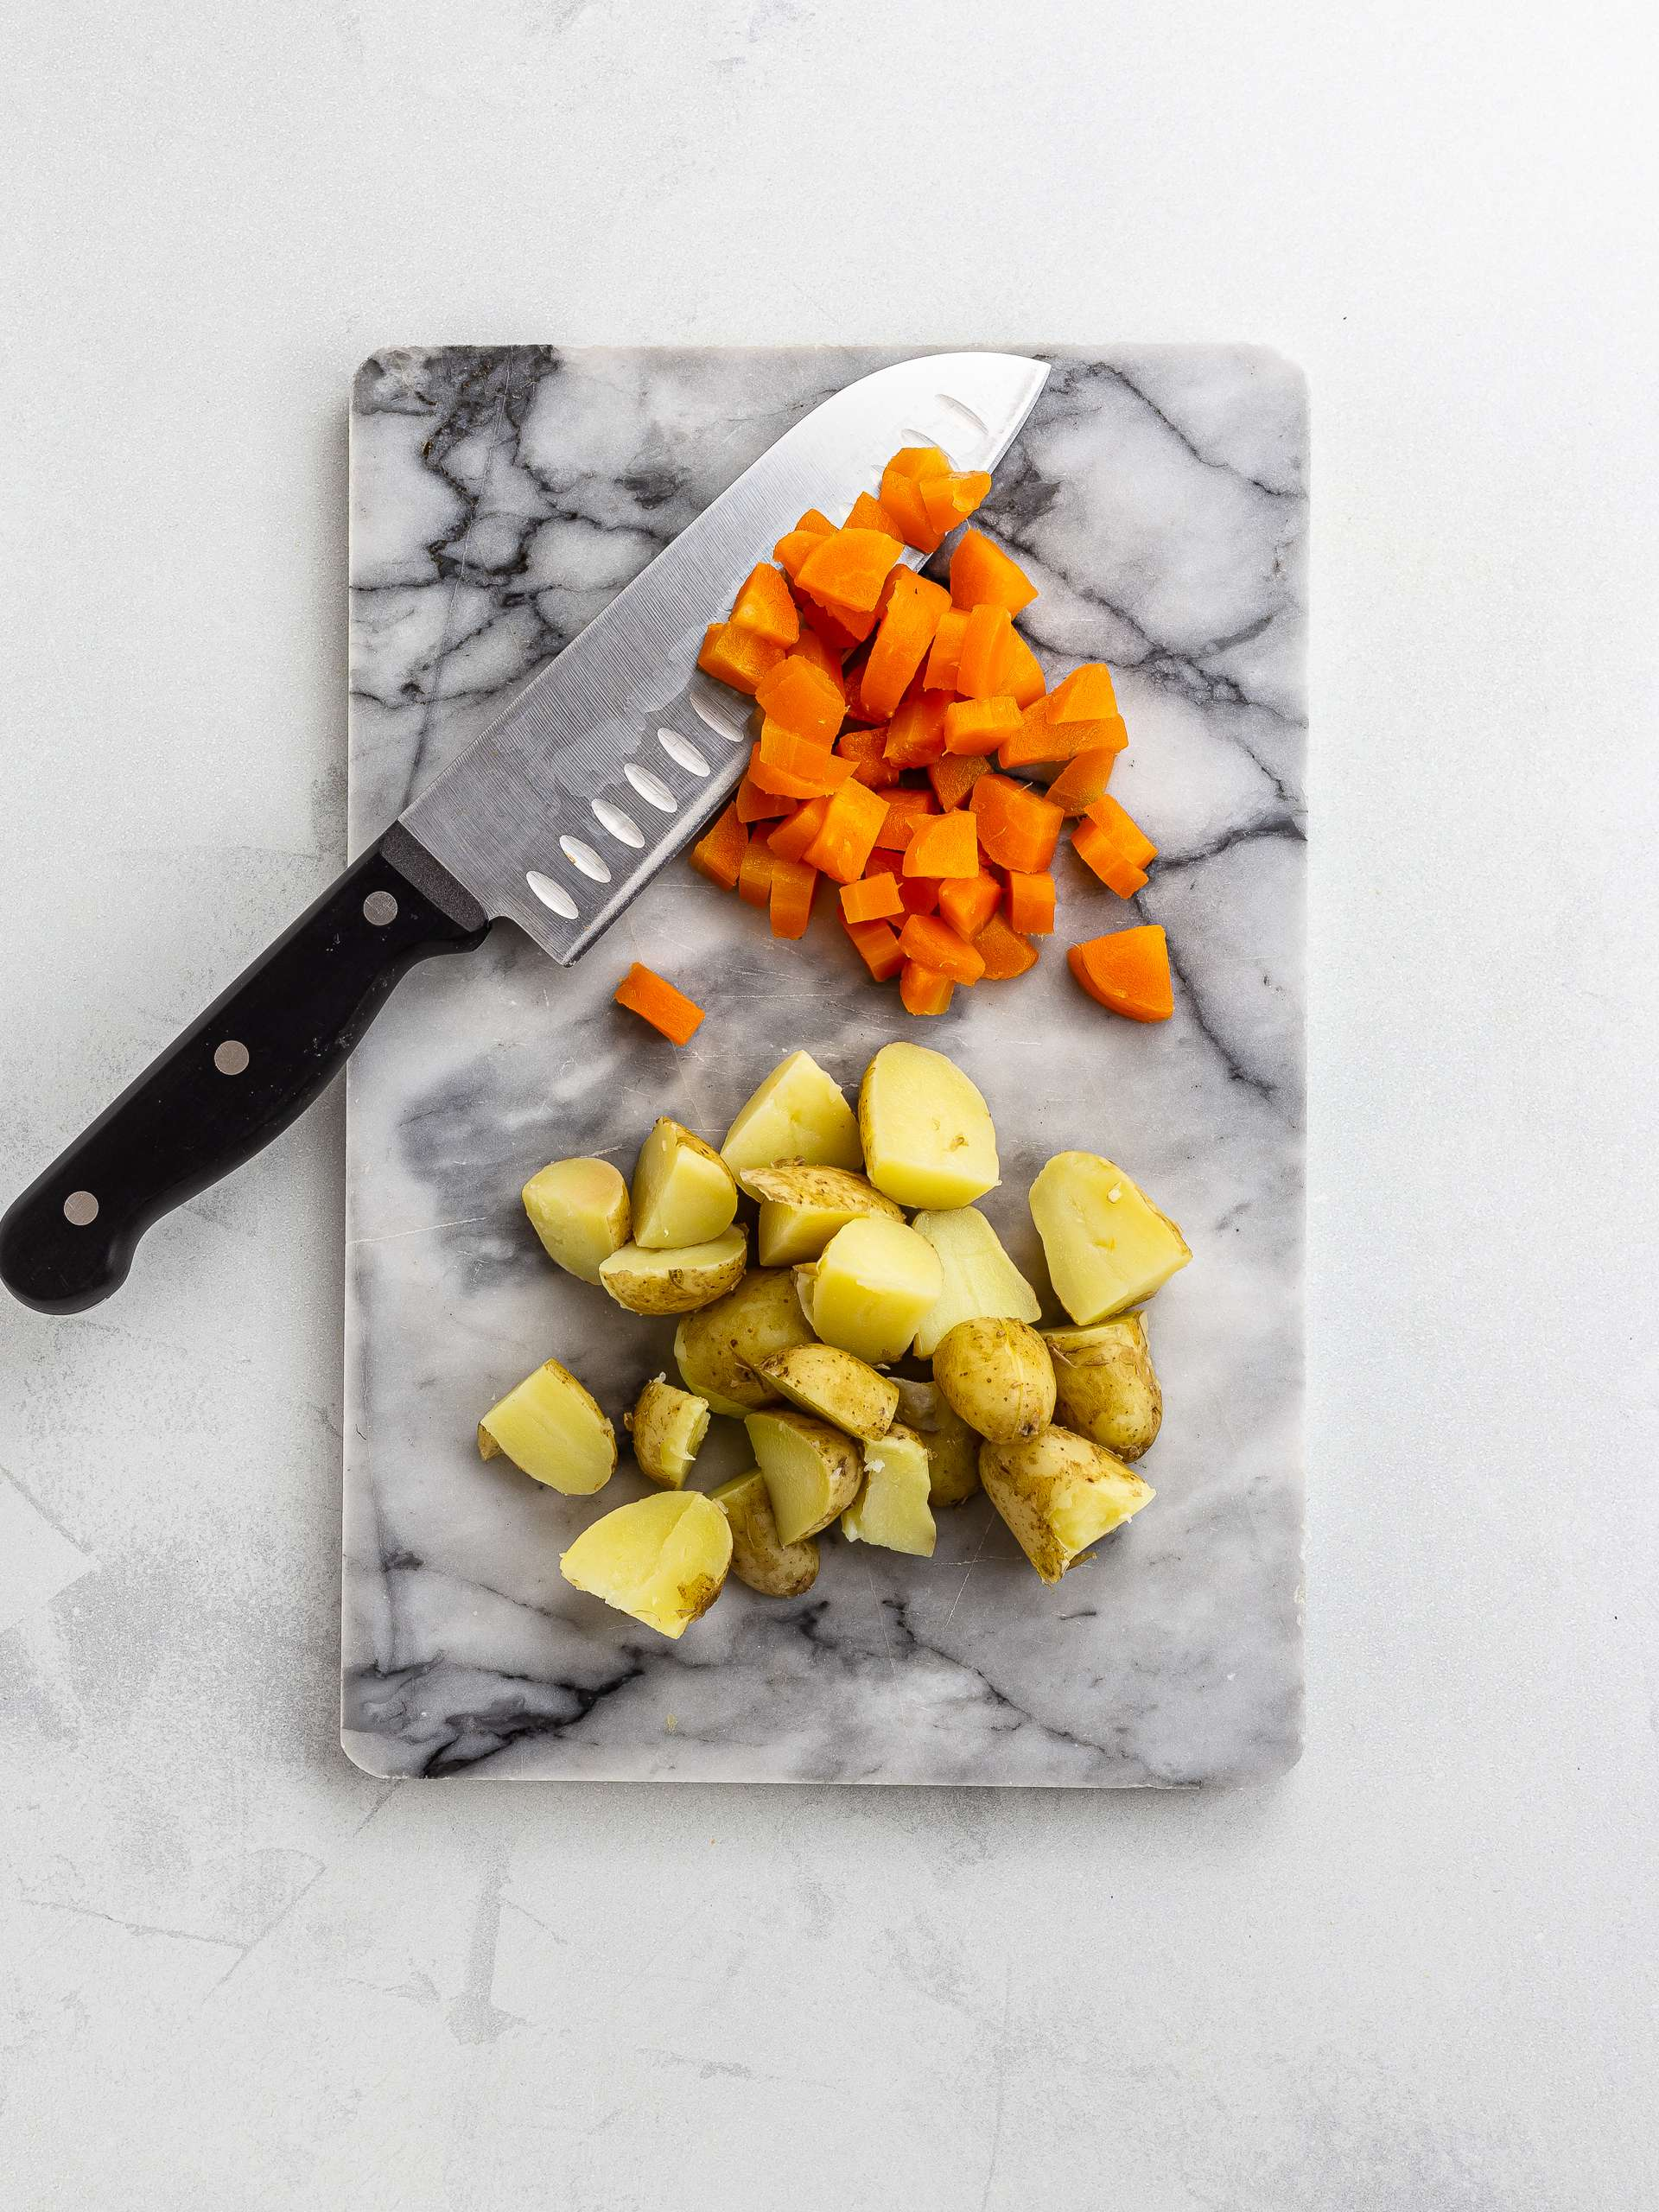 chopped potatoes and carrots